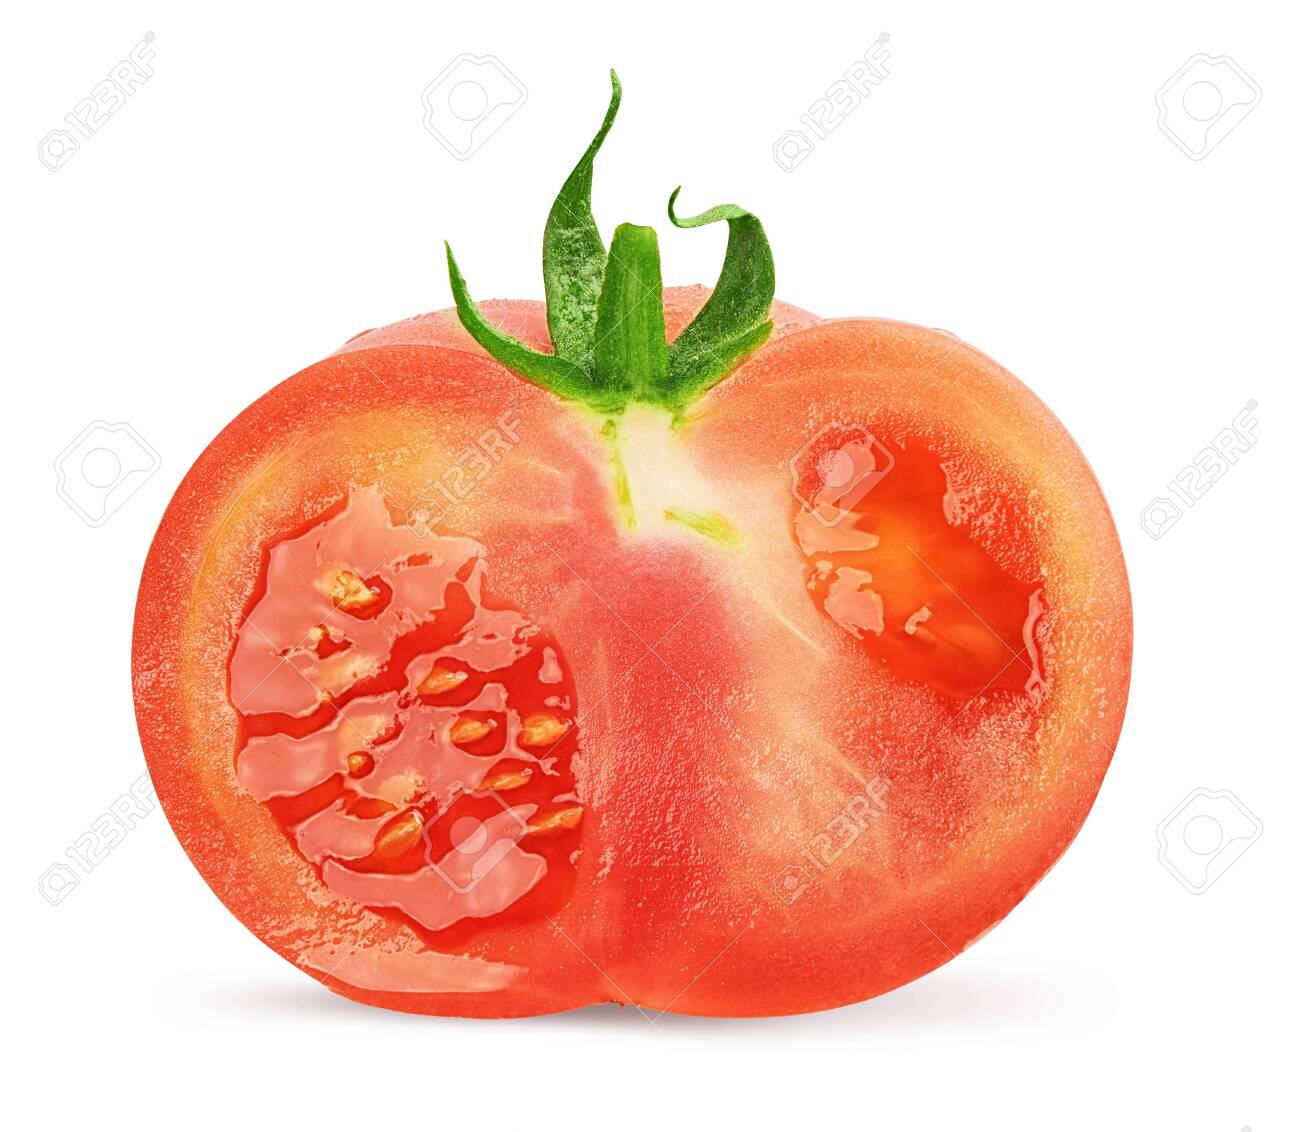 half tomato isolated on white background with clipping path. - 148361881